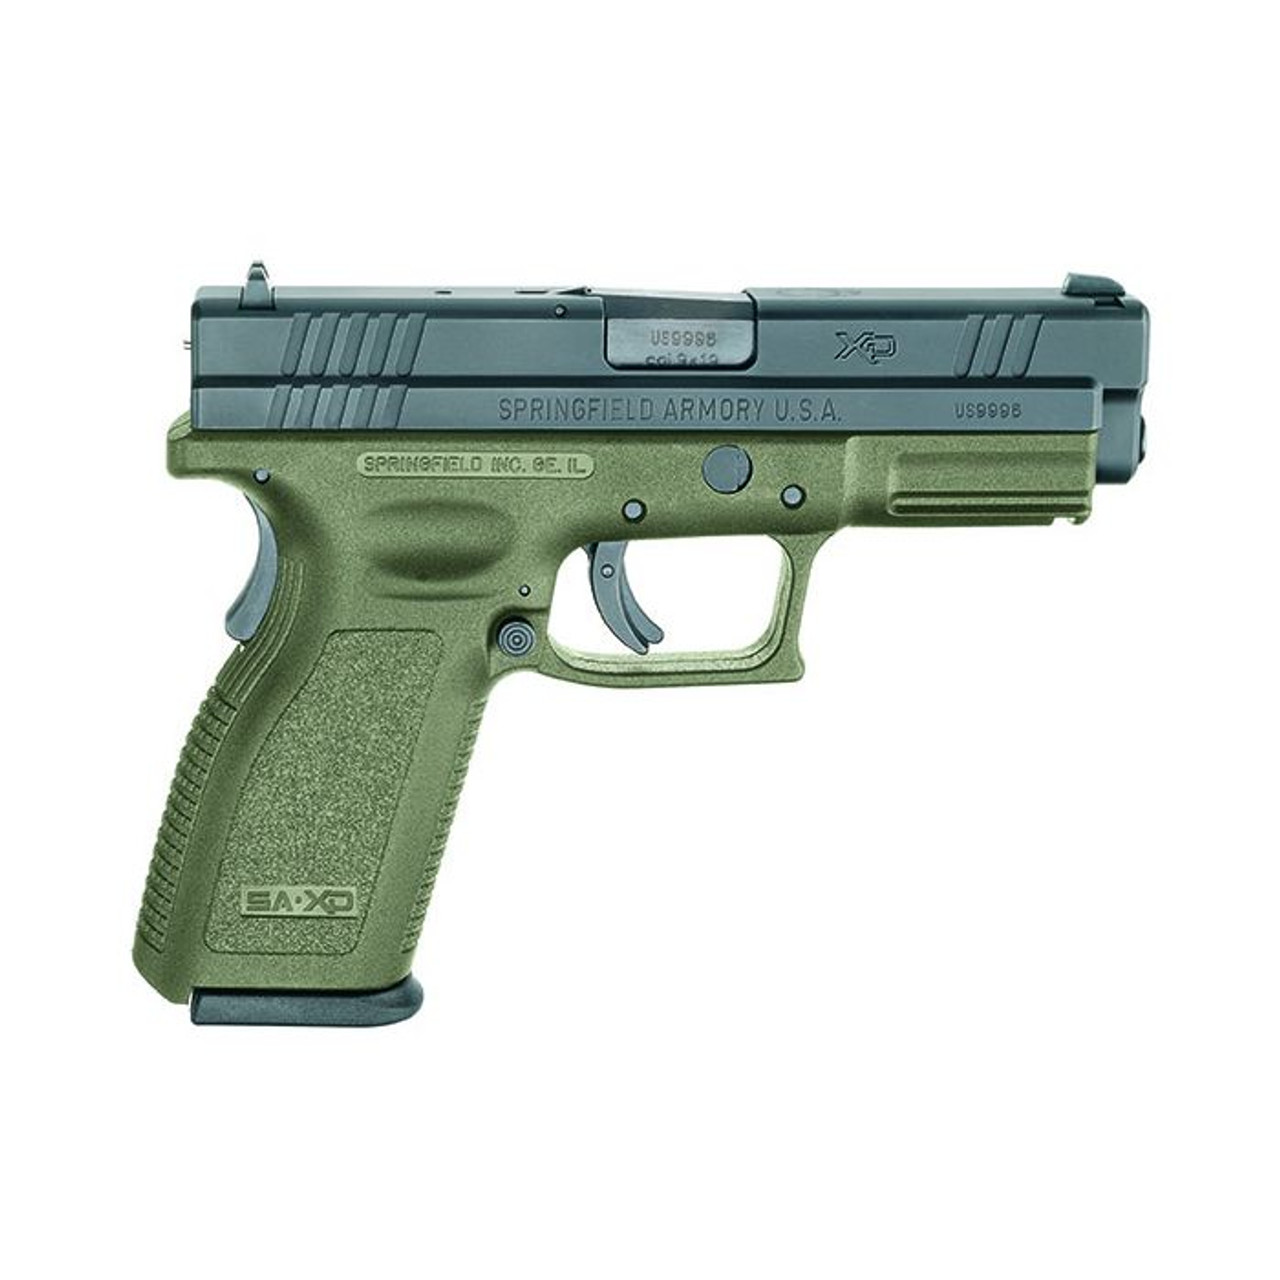 Springfield Amory XD9 OD Green 4in CALIFORNIA LEGAL - 9mm - LIGHT PACKAGE